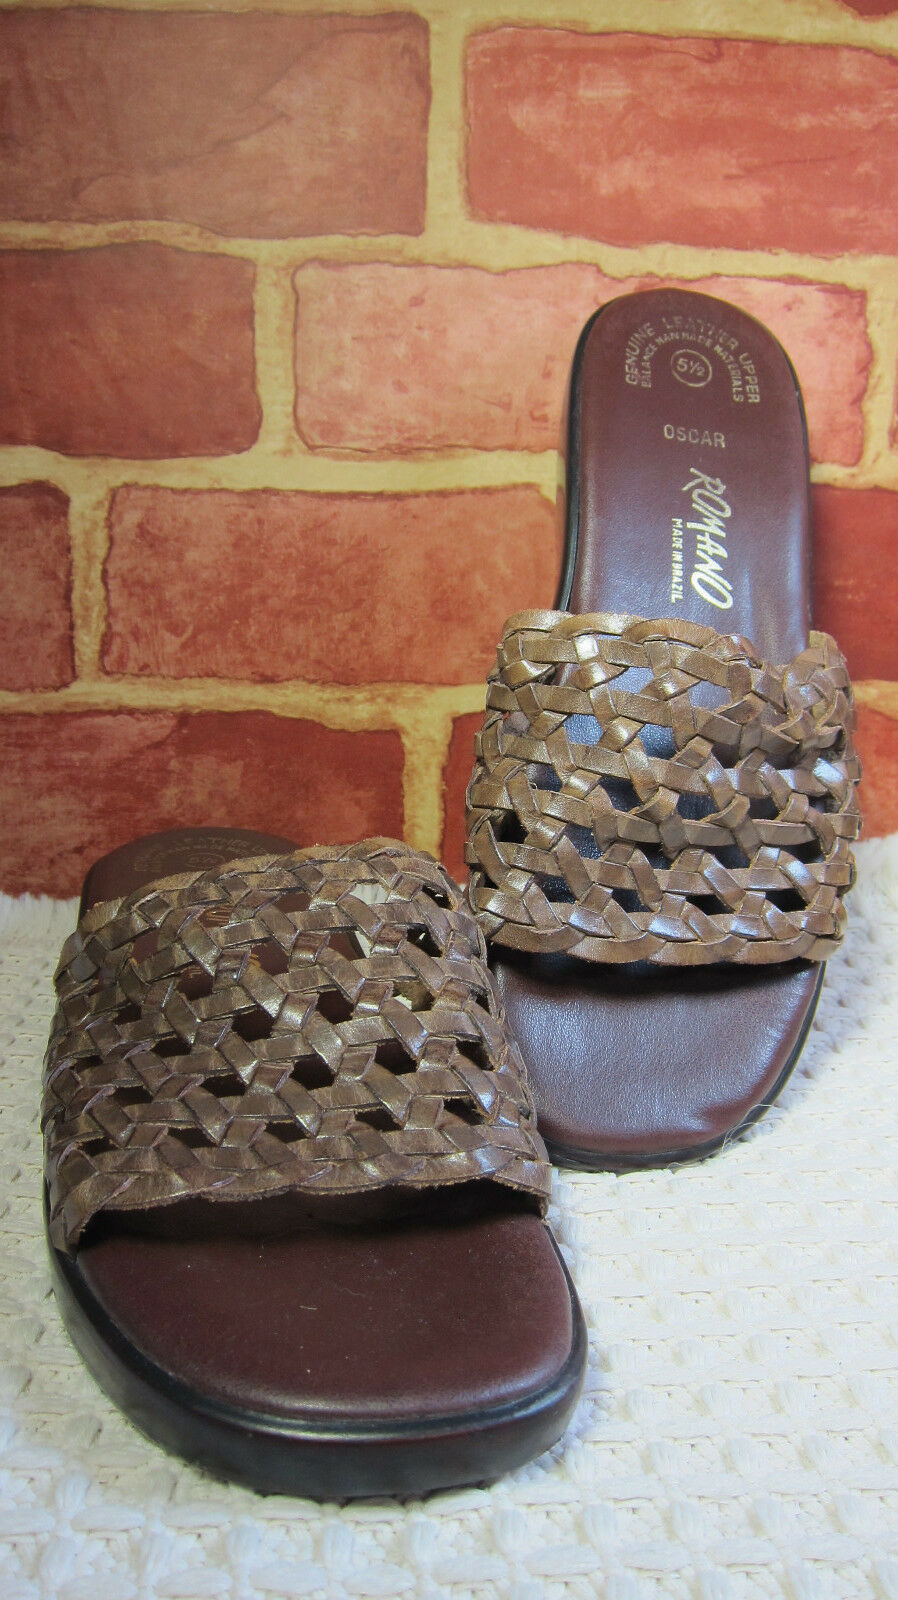 "Women's Romano ""OSCAR"" Size 5.5 Shoes Brown Leather  1.5"" Heel Made in Brazil237"